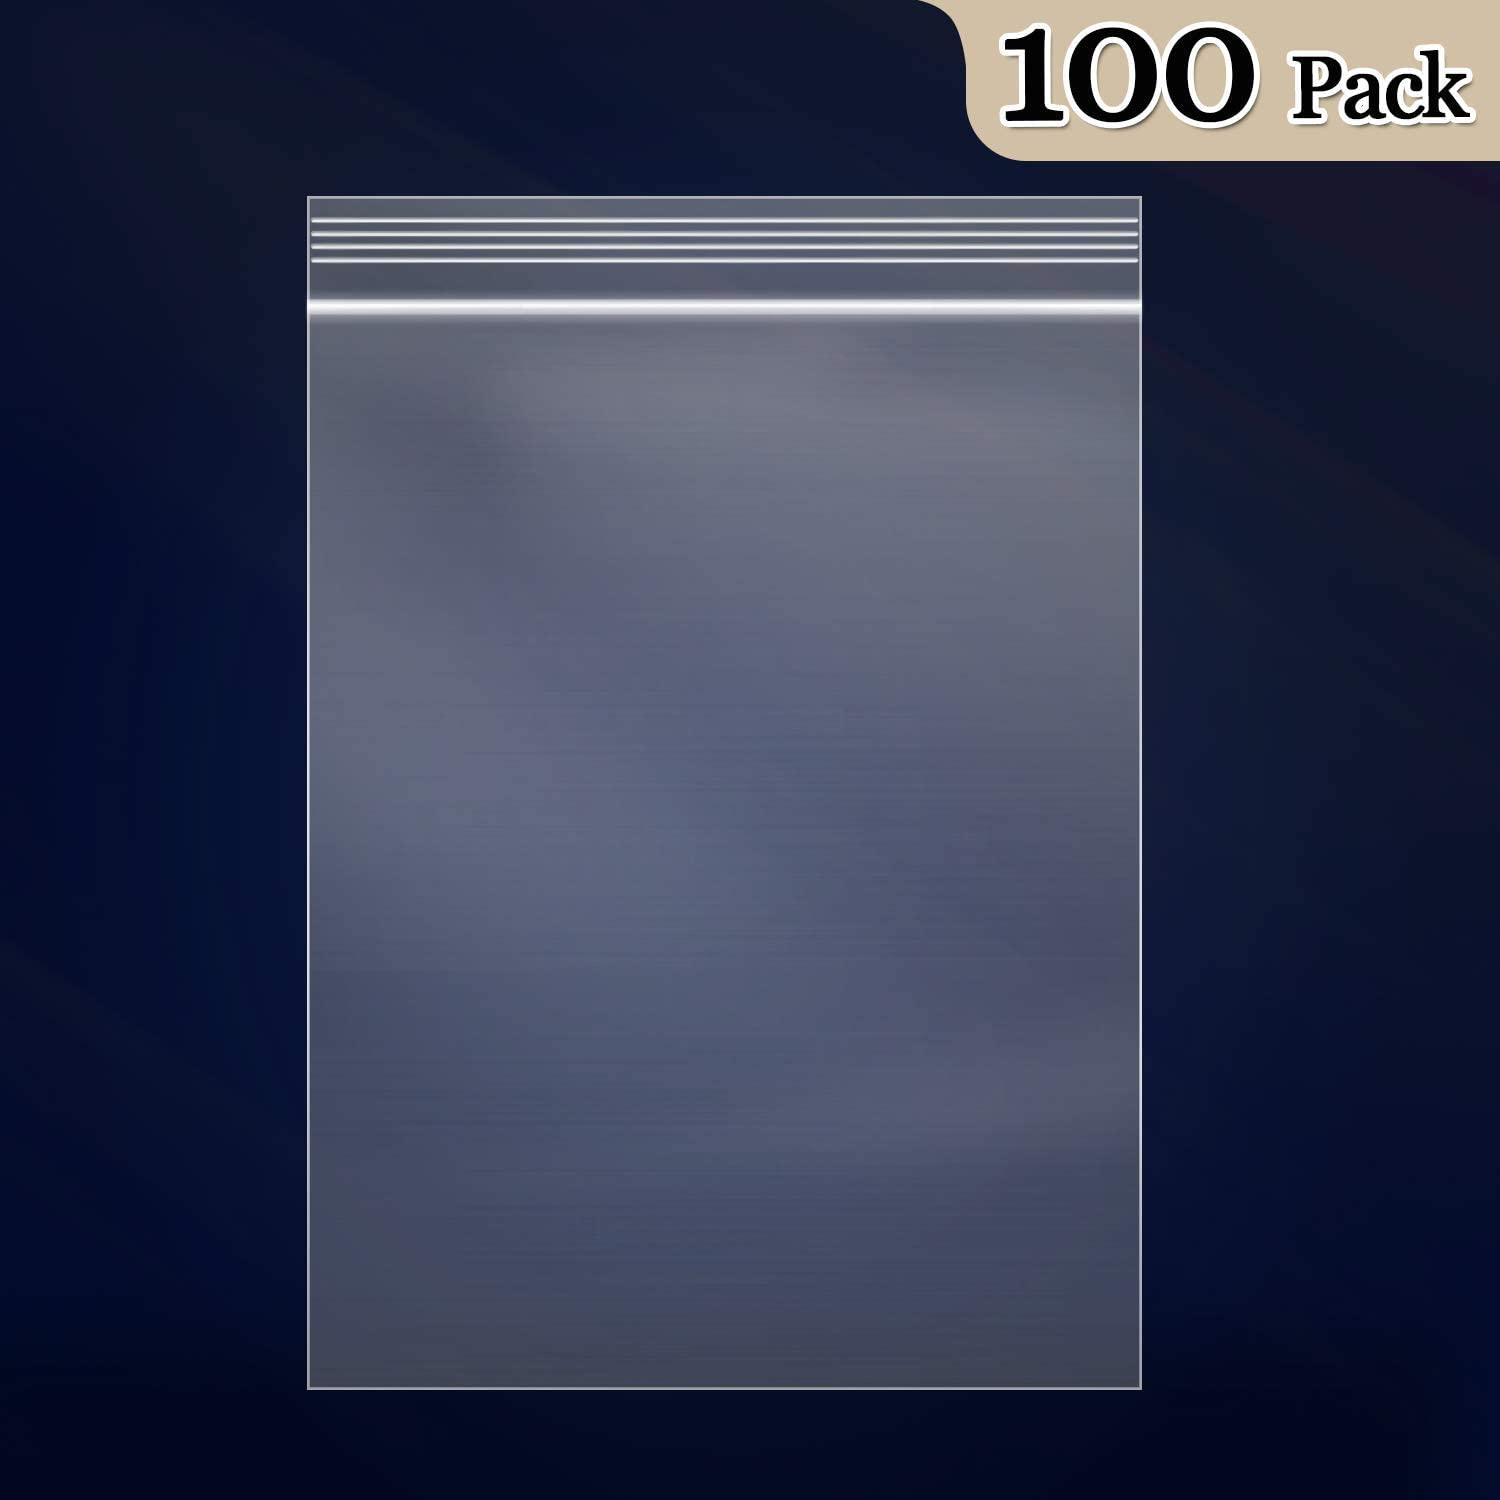 12 x 15 2 Mil Clear Reclosable Poly Bags with Resealable Lock Seal Zipper 1000 Pieces